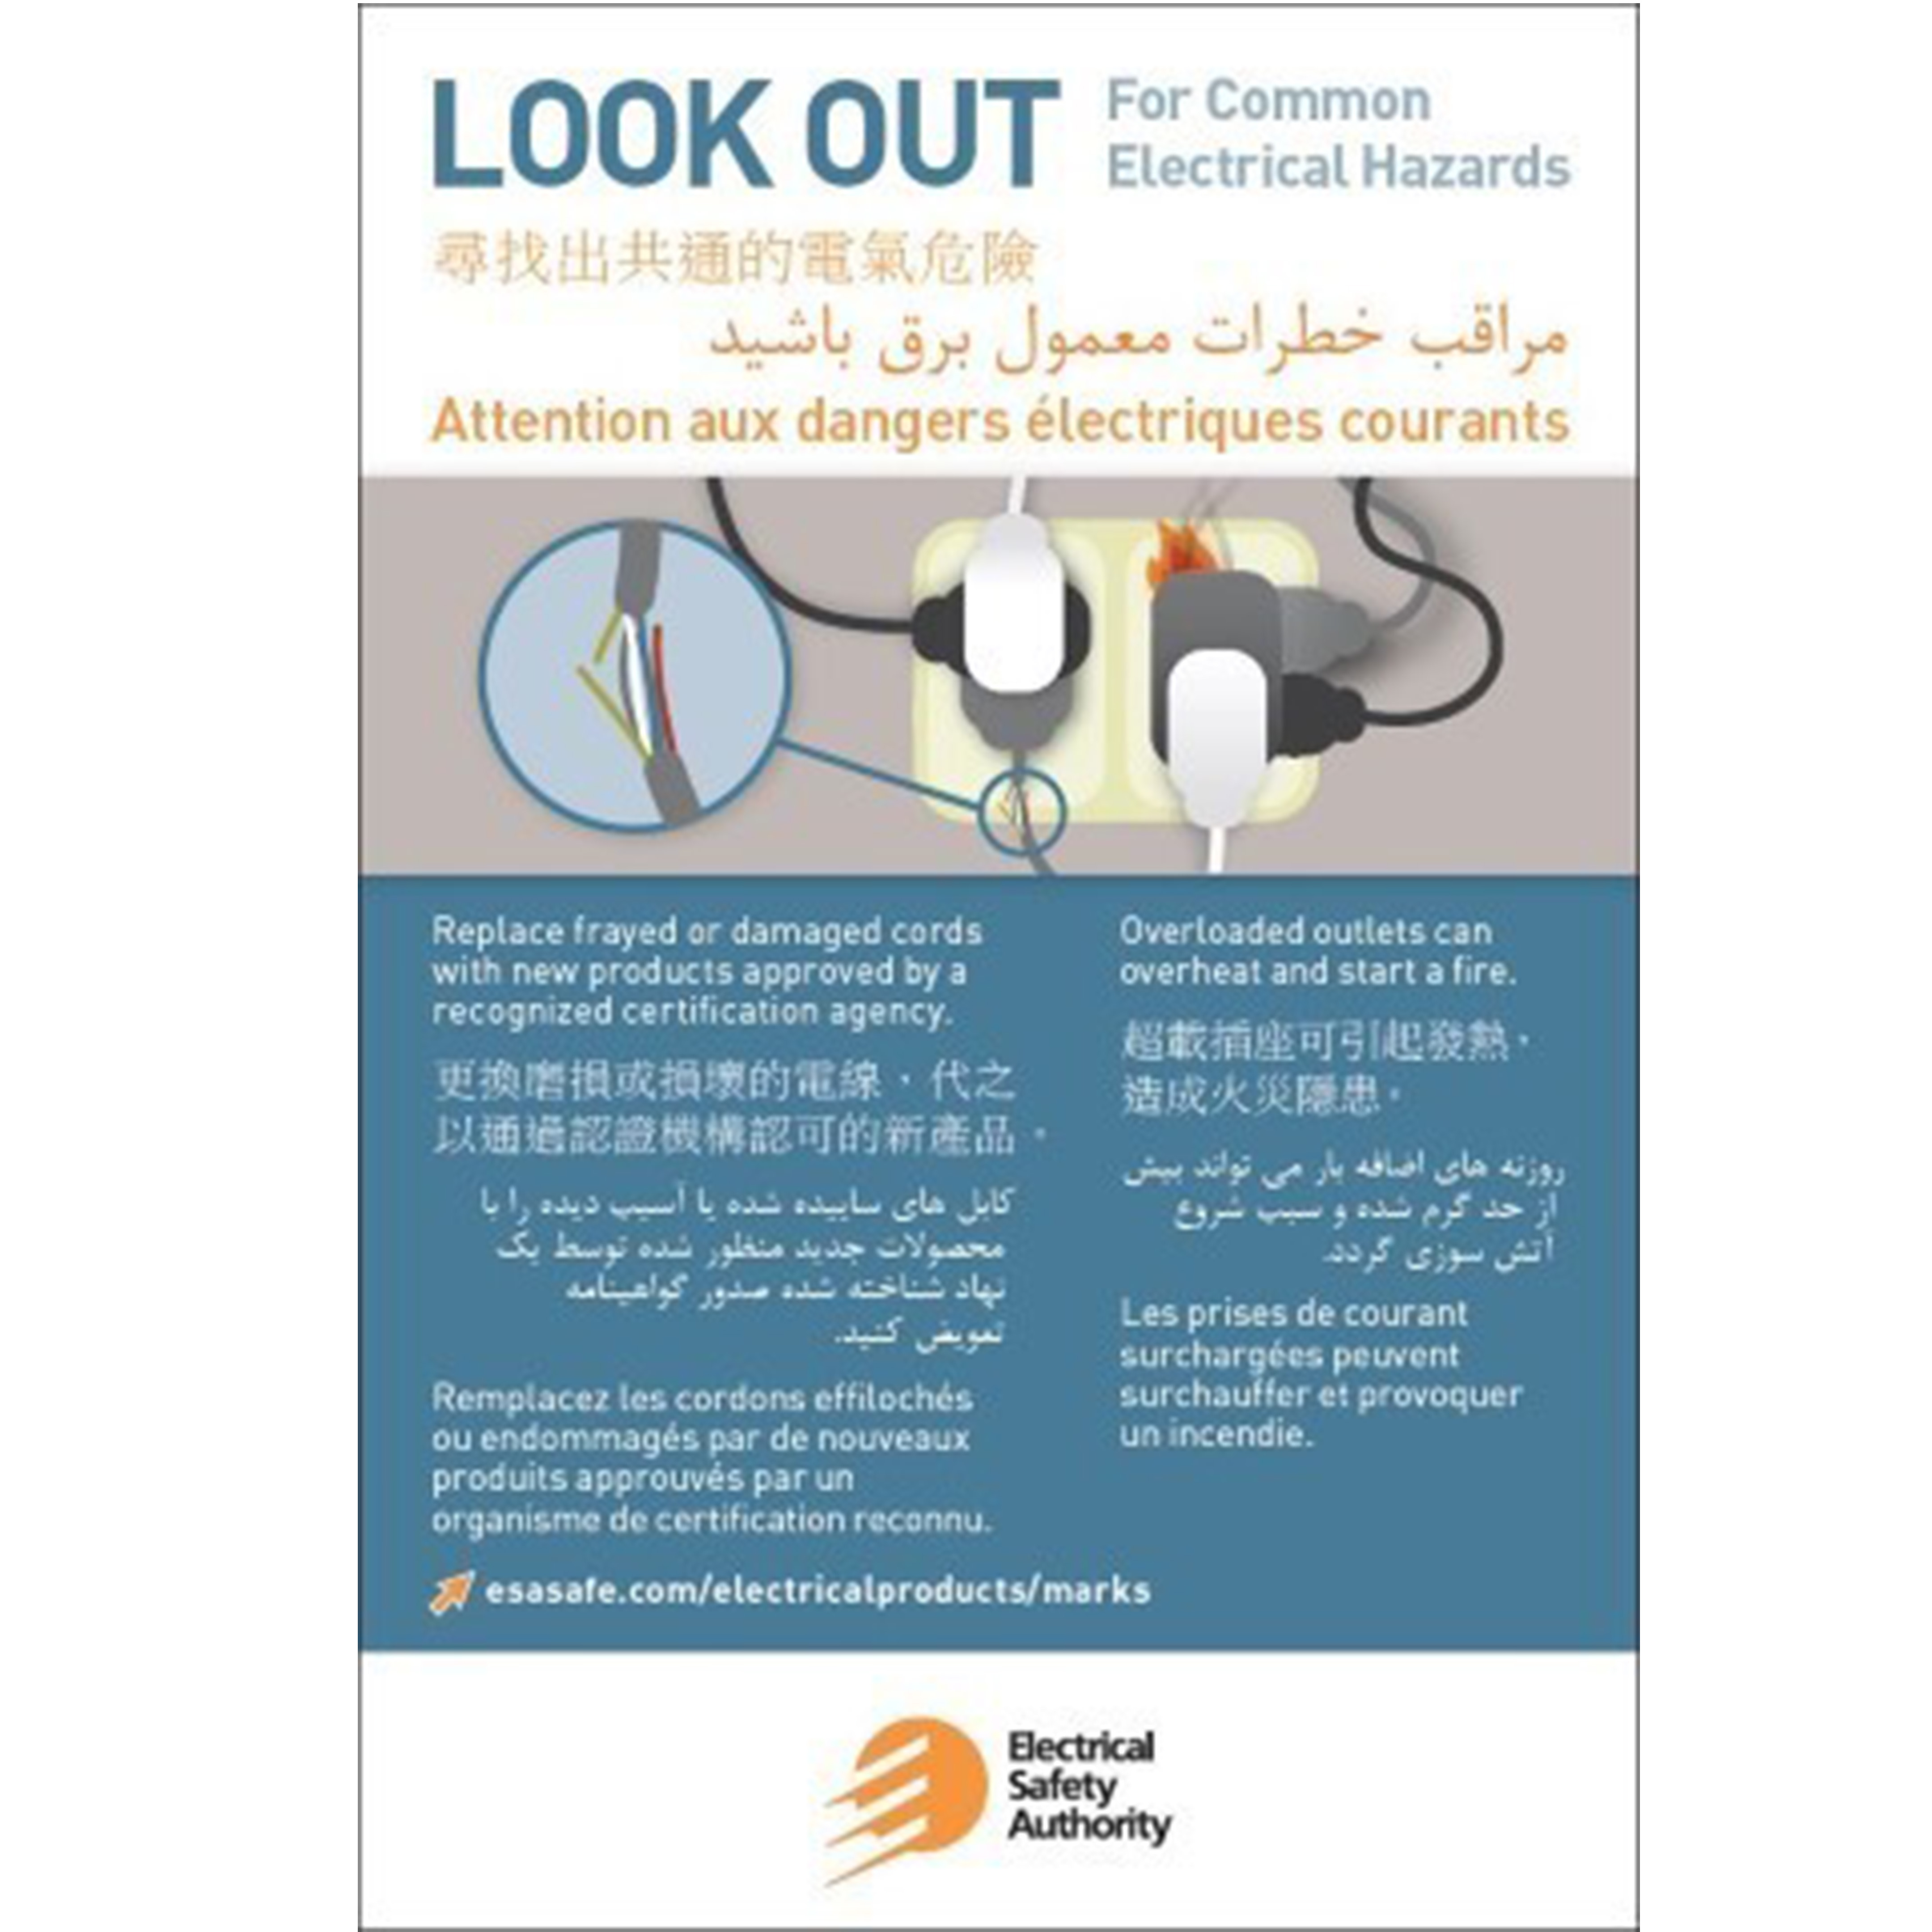 Cfr stores look out for common electrical hazards multilingual card sku esa 002 xflitez Images